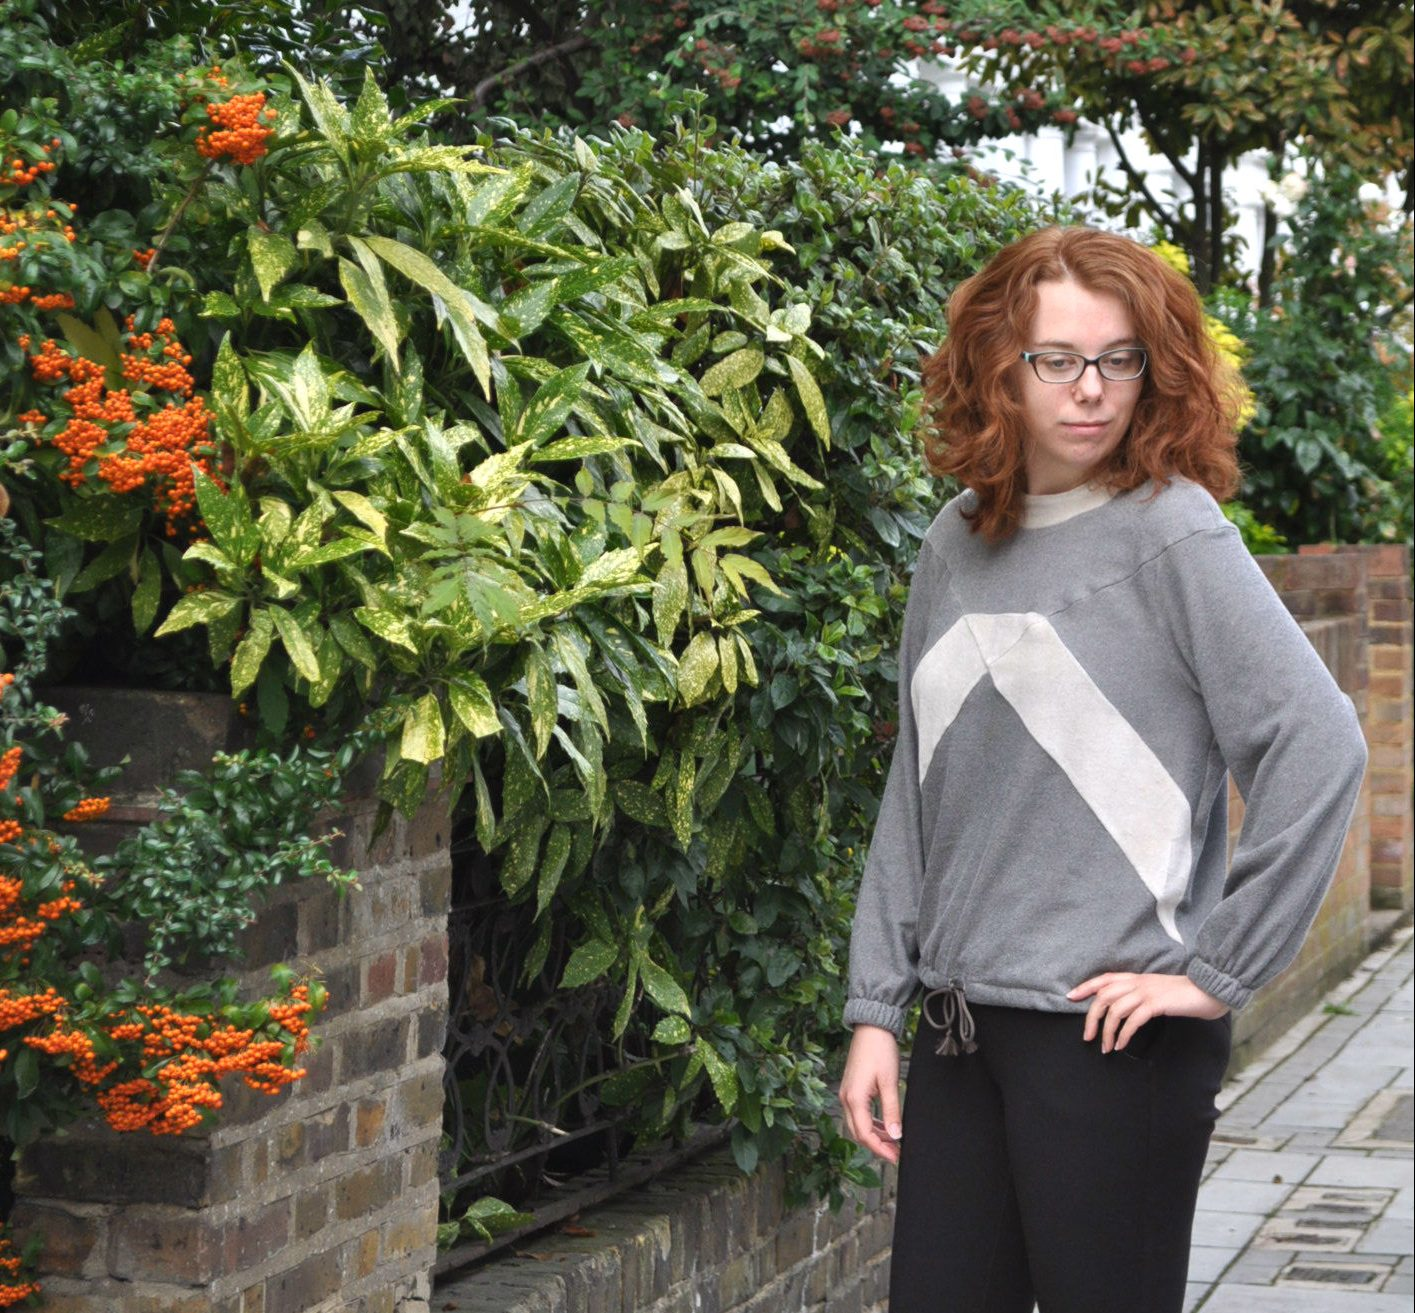 Style Maker Fabrics | Fall Leisure Outfit